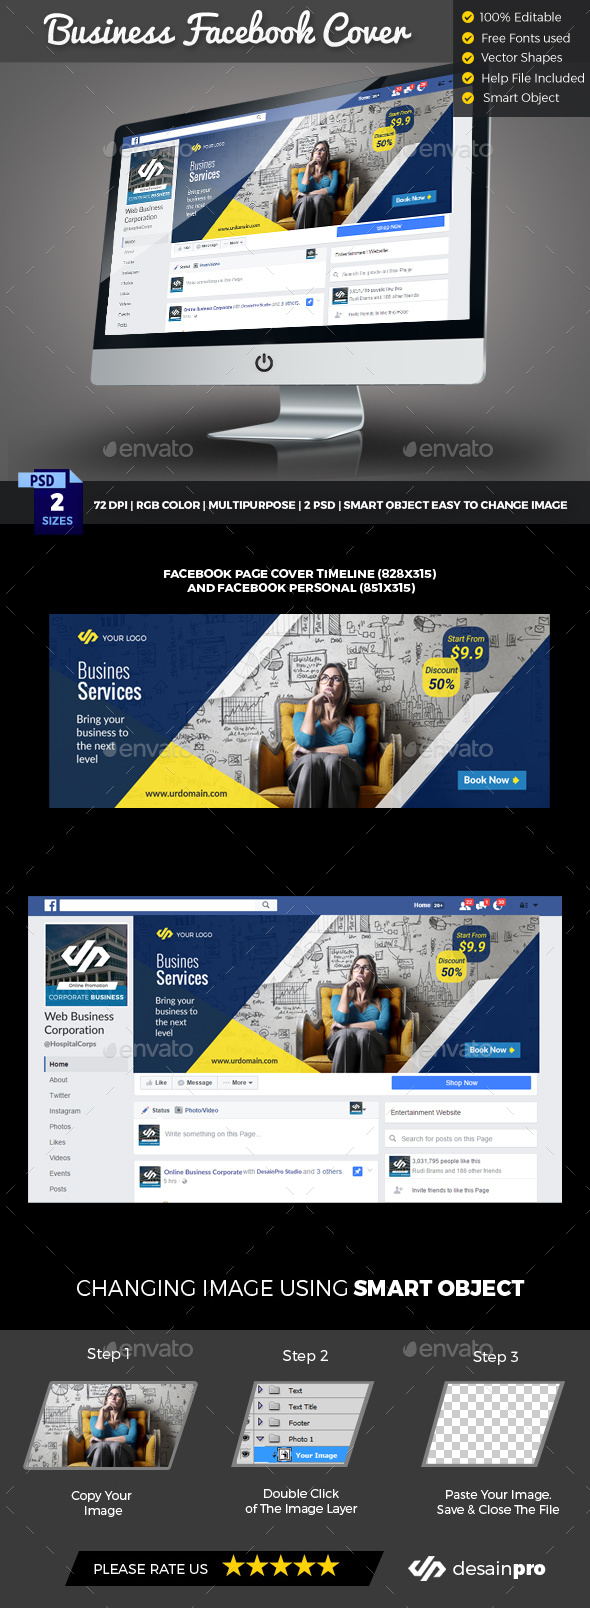 Facebook business cover graphics designs templates cheaphphosting Gallery